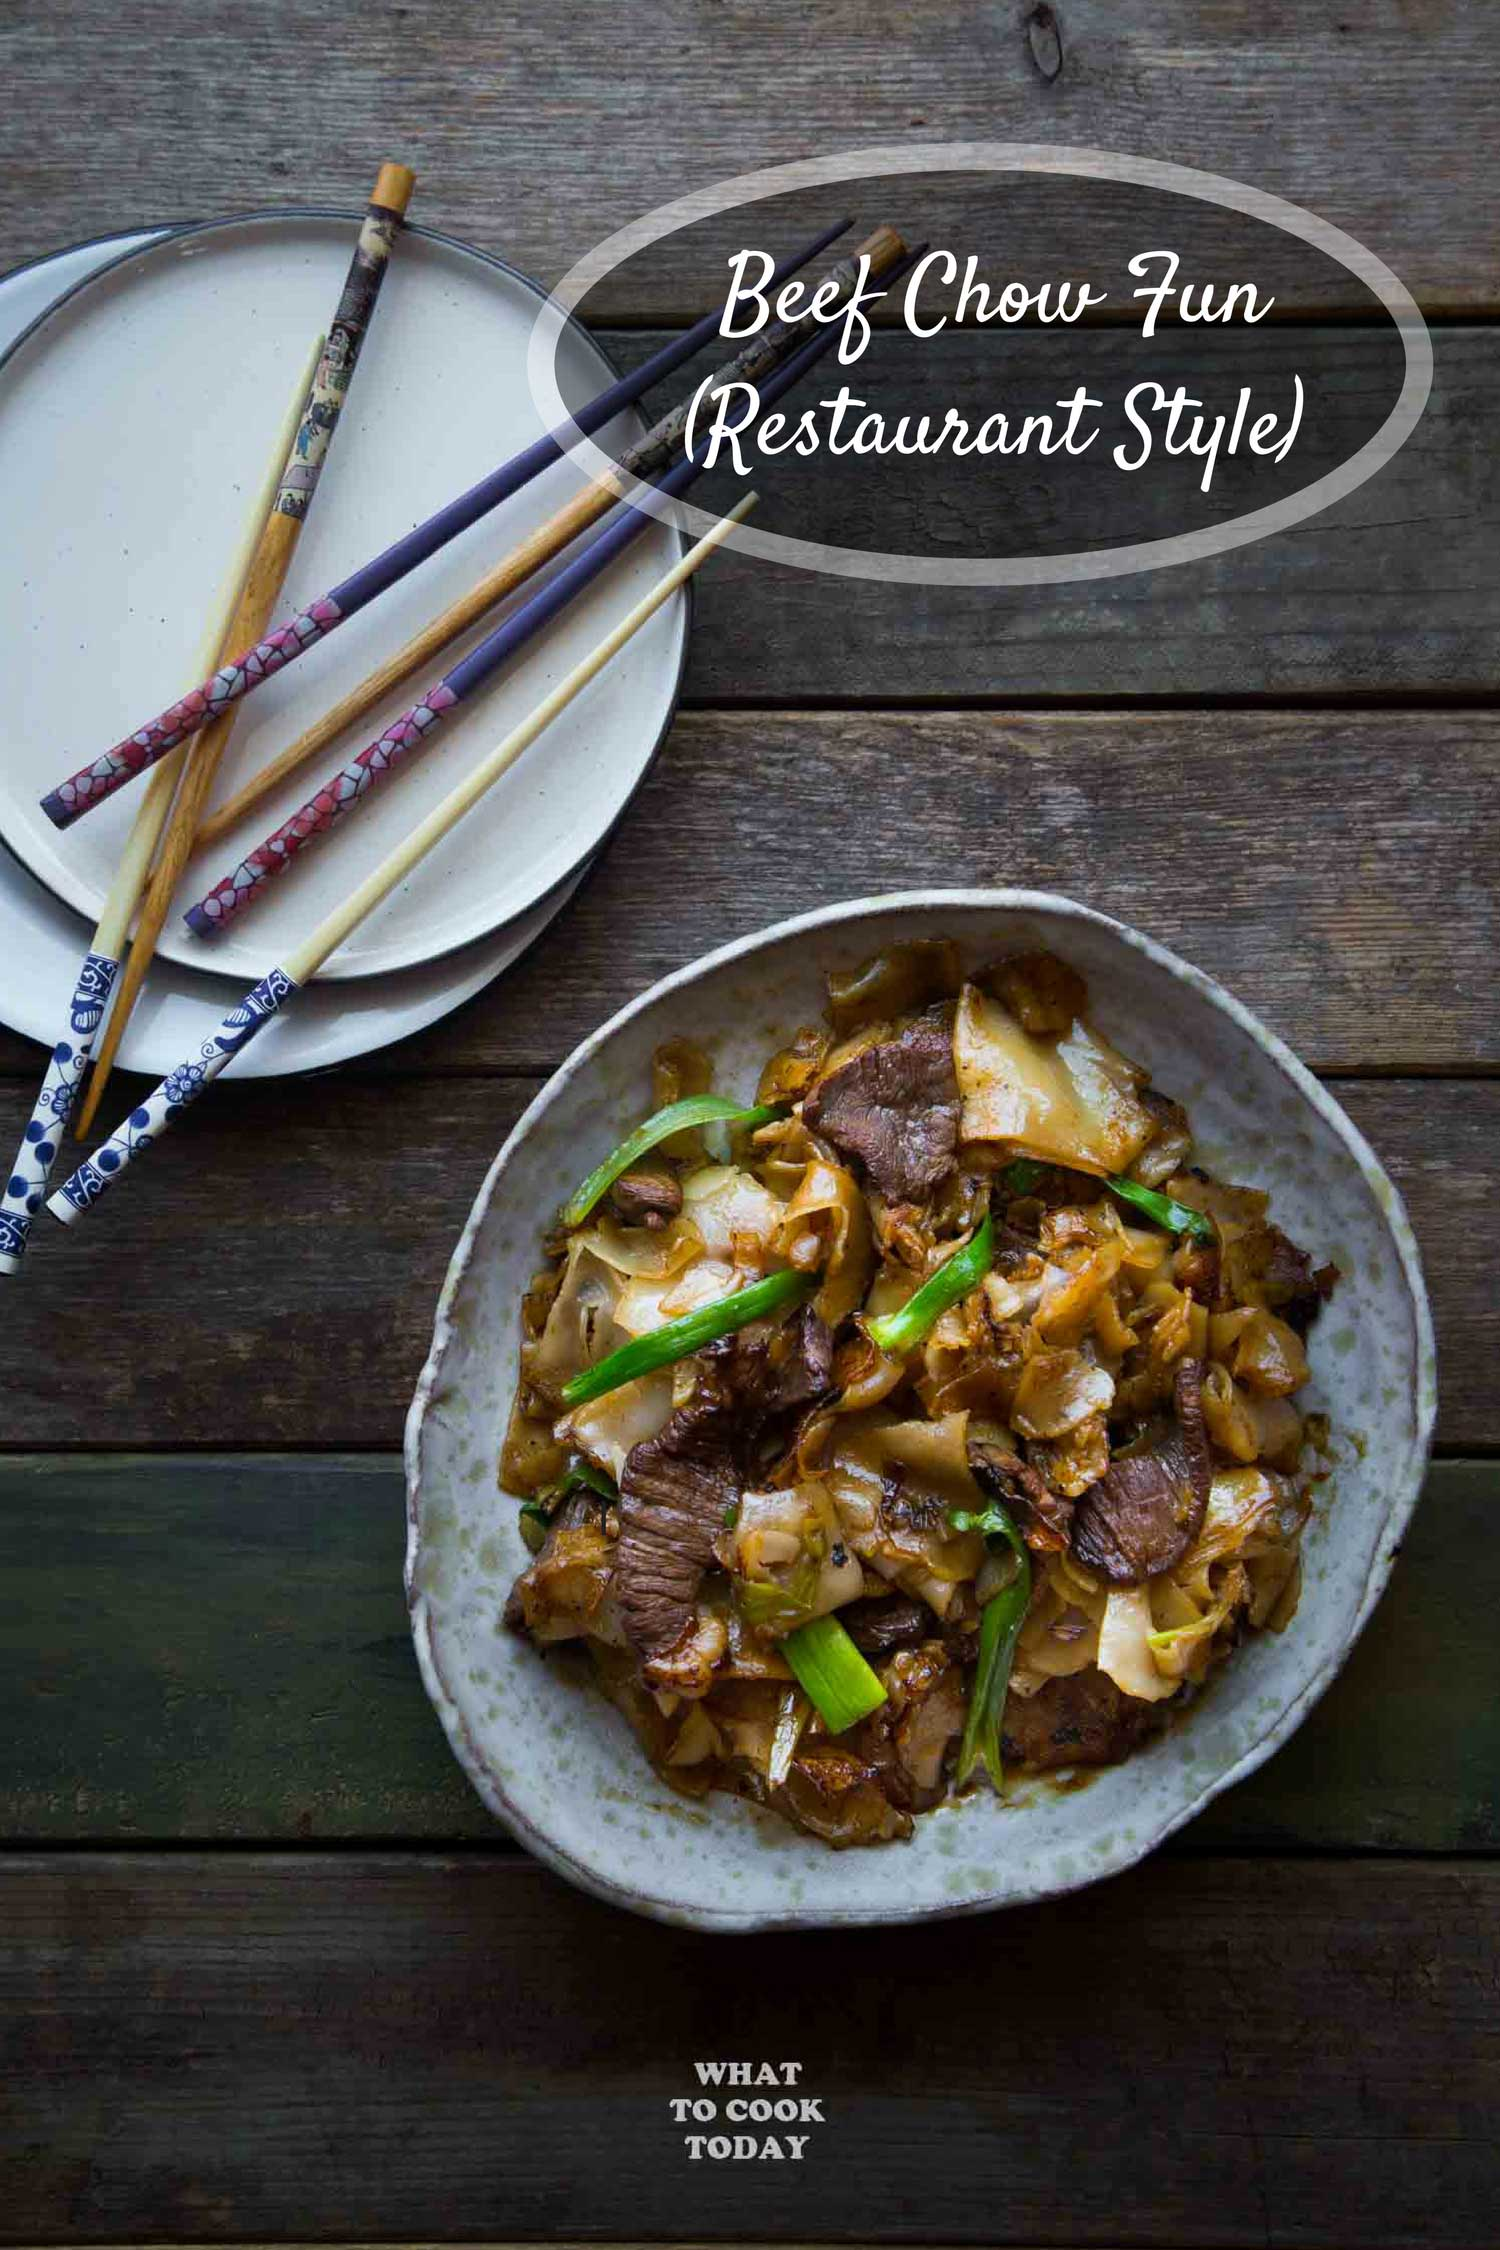 Restaurant-style Beef Chow Fun - Learn how to make restaurant-style beef chow fun at your very own kitchen. It's seriously easy and no fuss recipe.